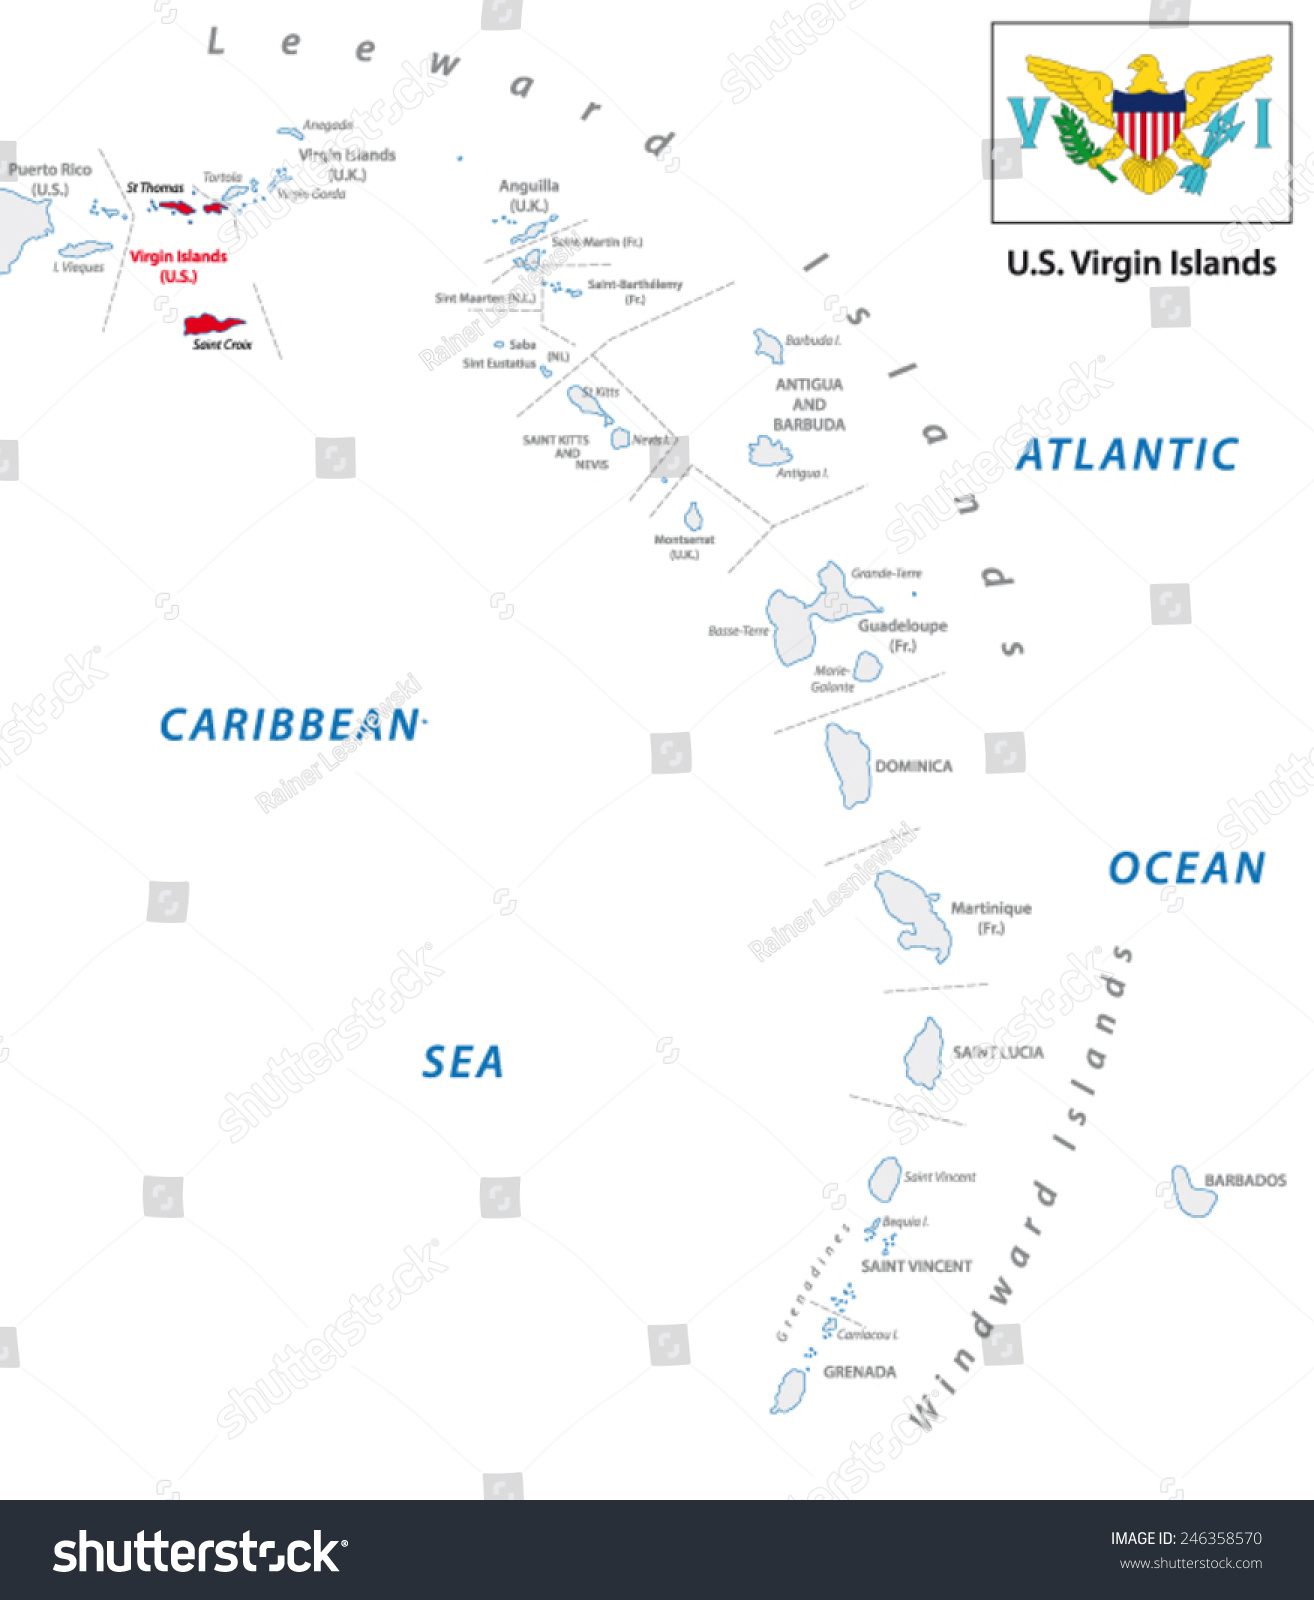 Lesser Antilles Outline Map With U.s. Virgin Island Map